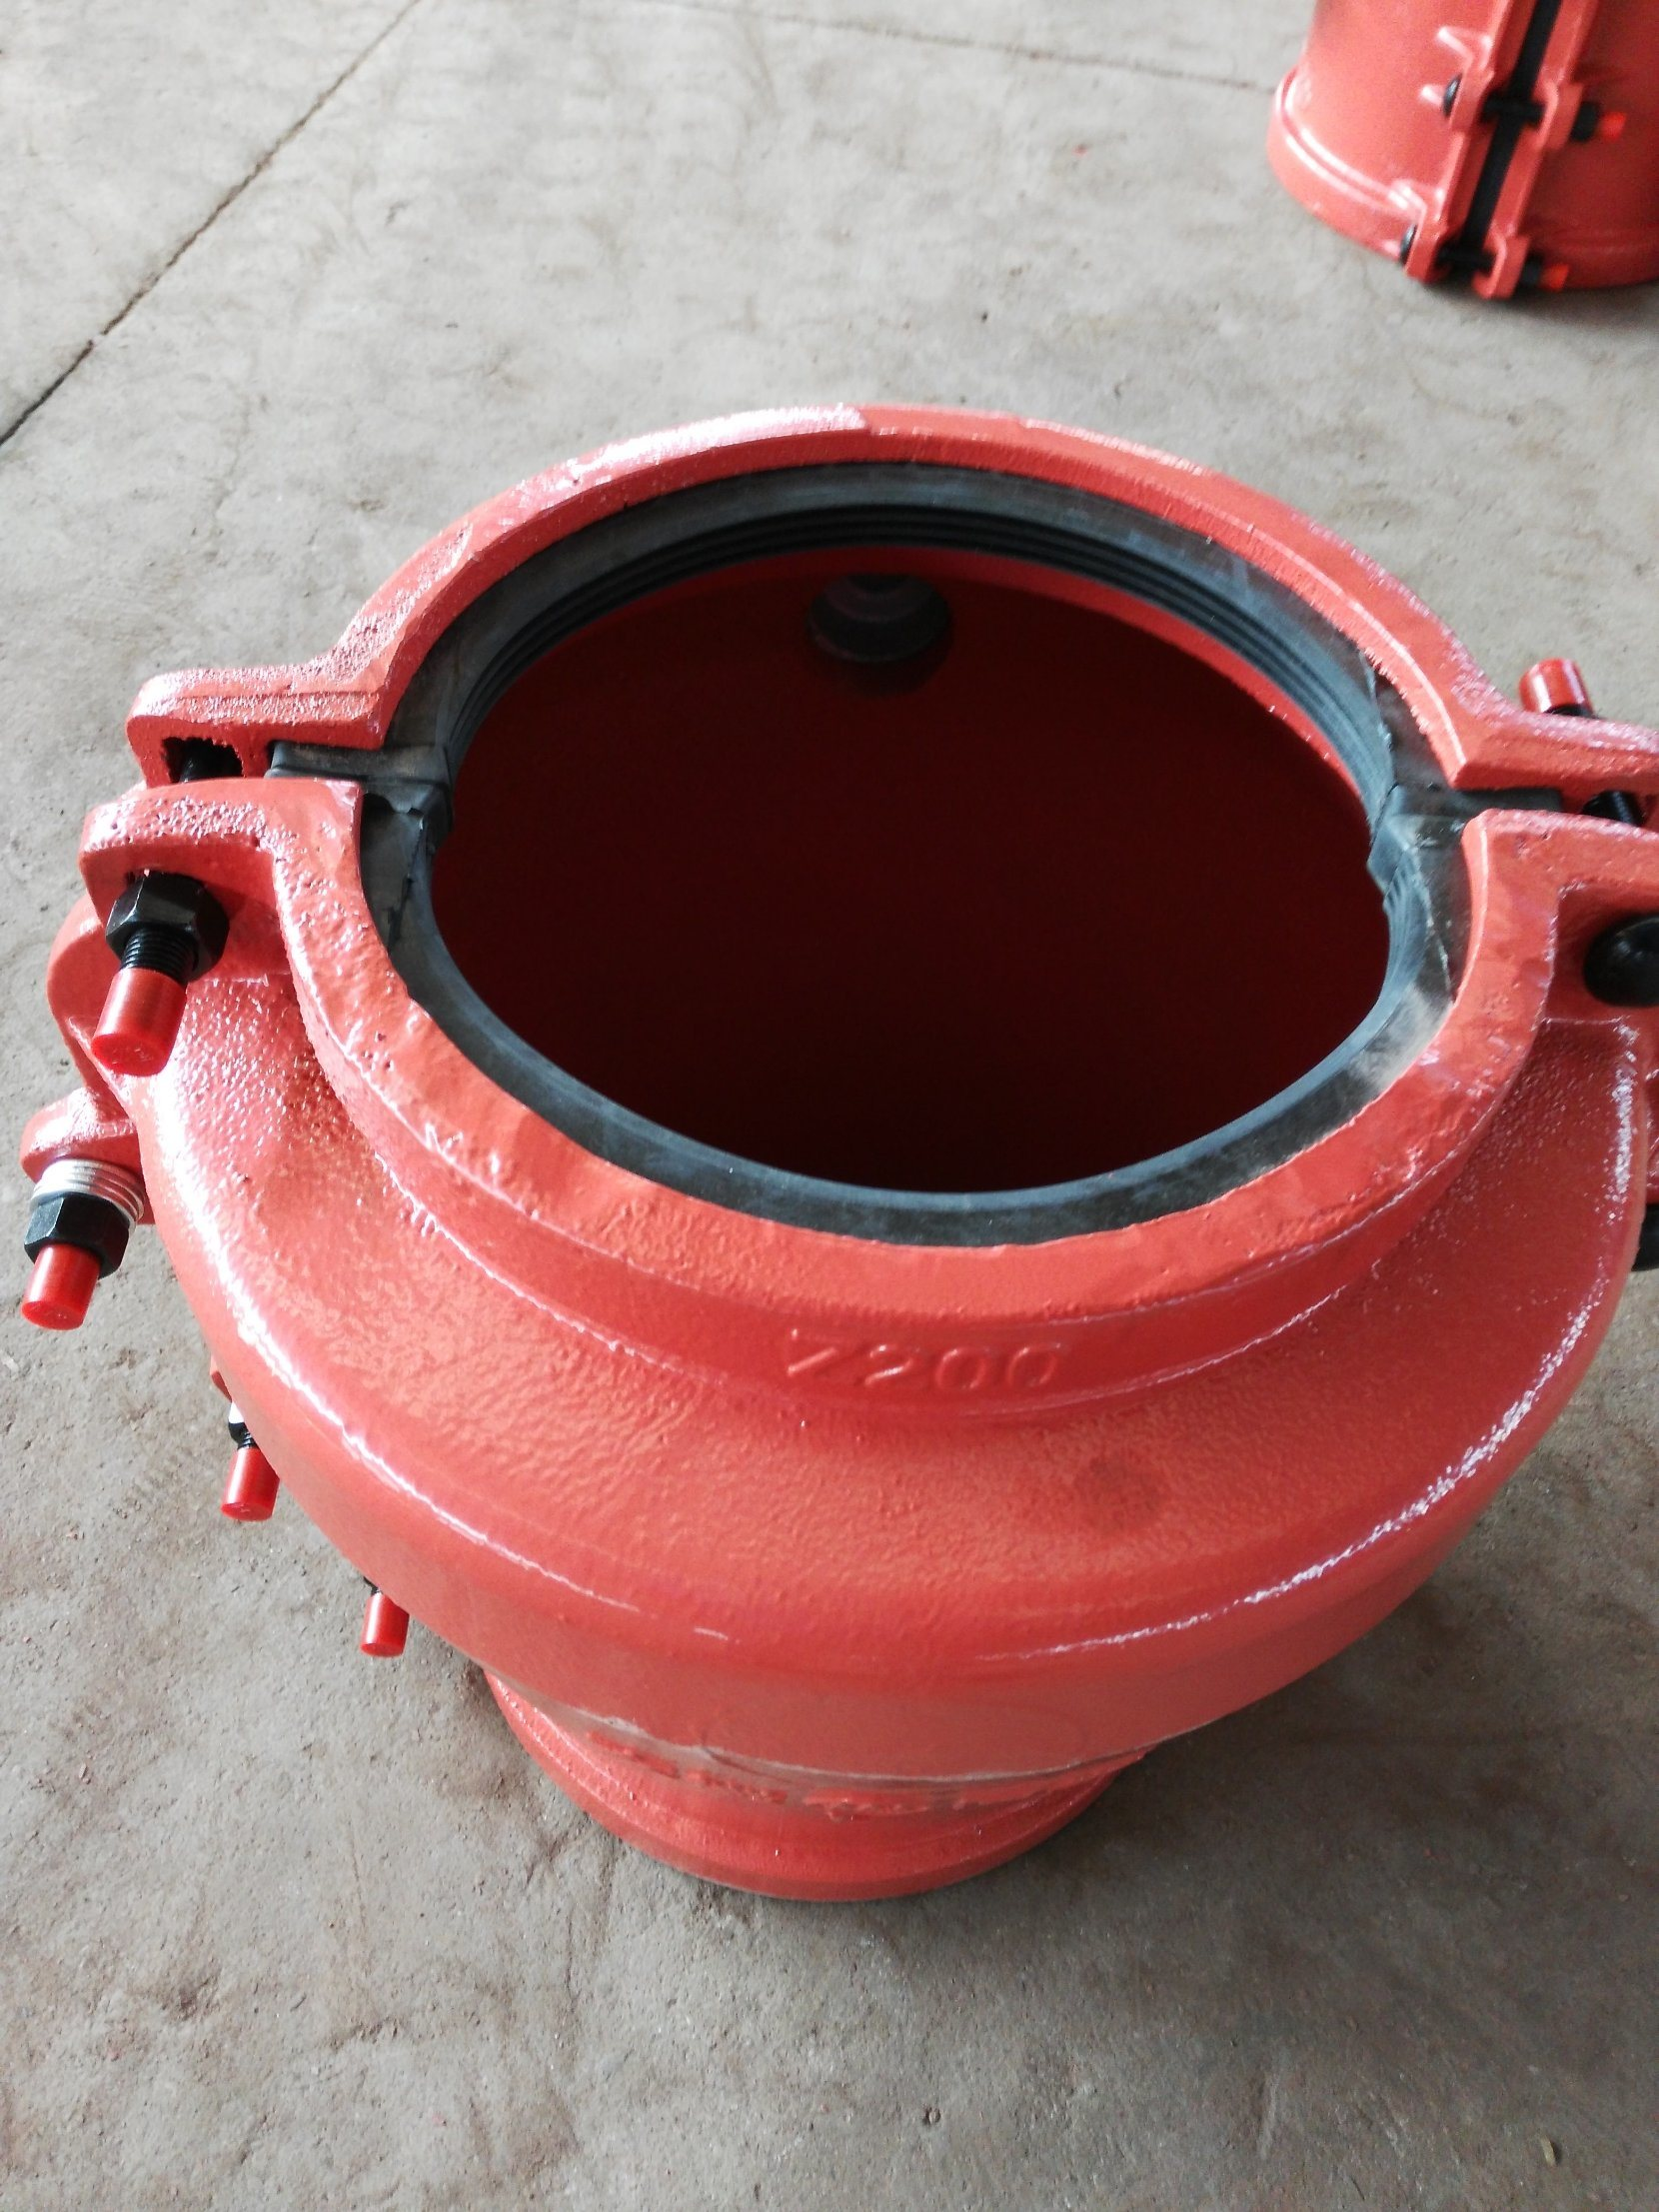 Pipe Repair Clamp Z200, Pipe Repair Coupling, Repair Pipe Clamp for Concrete Pipe. Leaking Pipe Quick Repair.